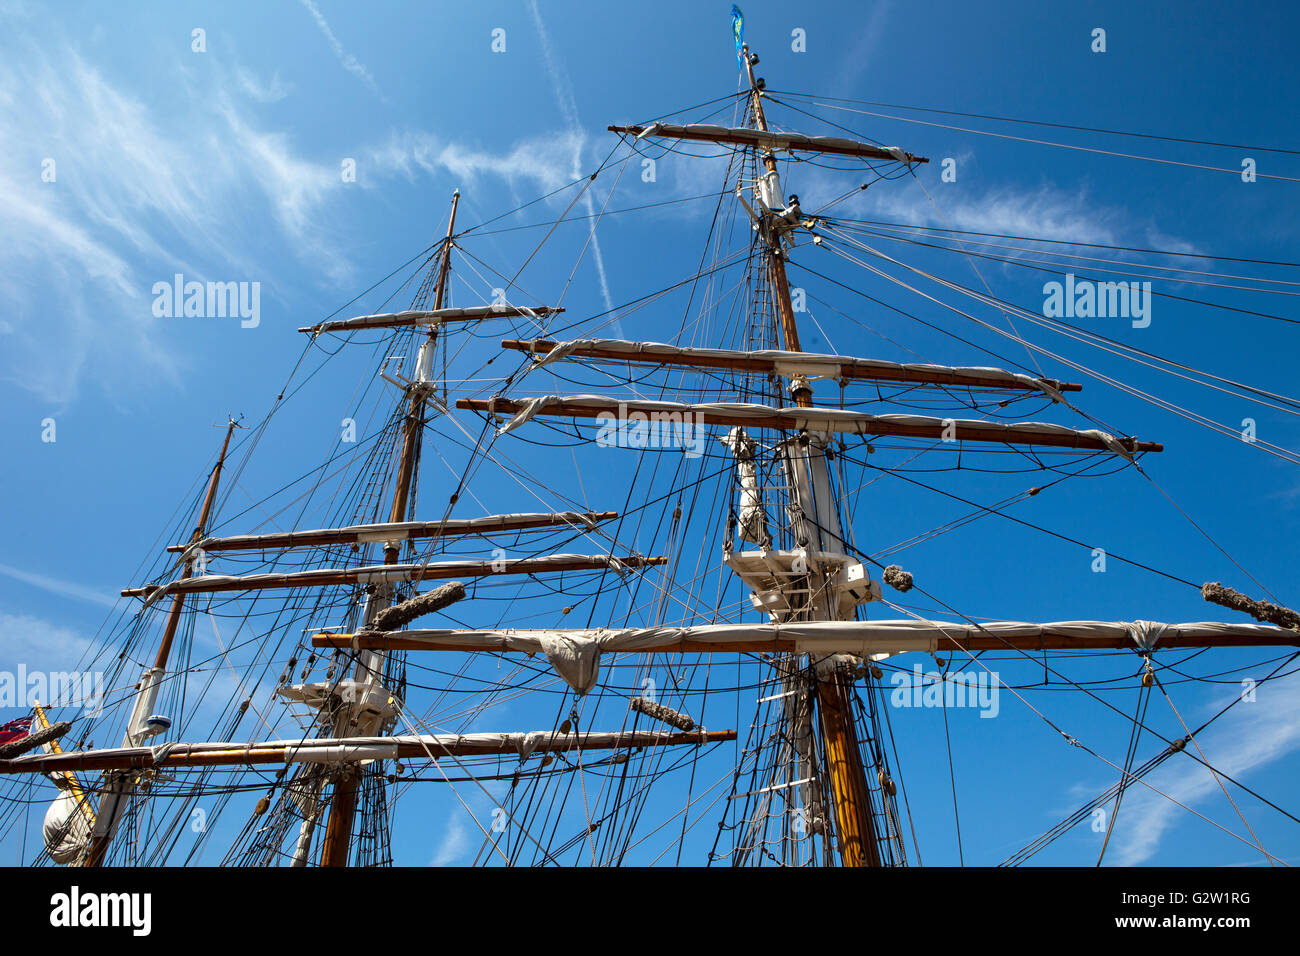 Tall ships on display at the International Mersey River Festival 2016 - Stock Image